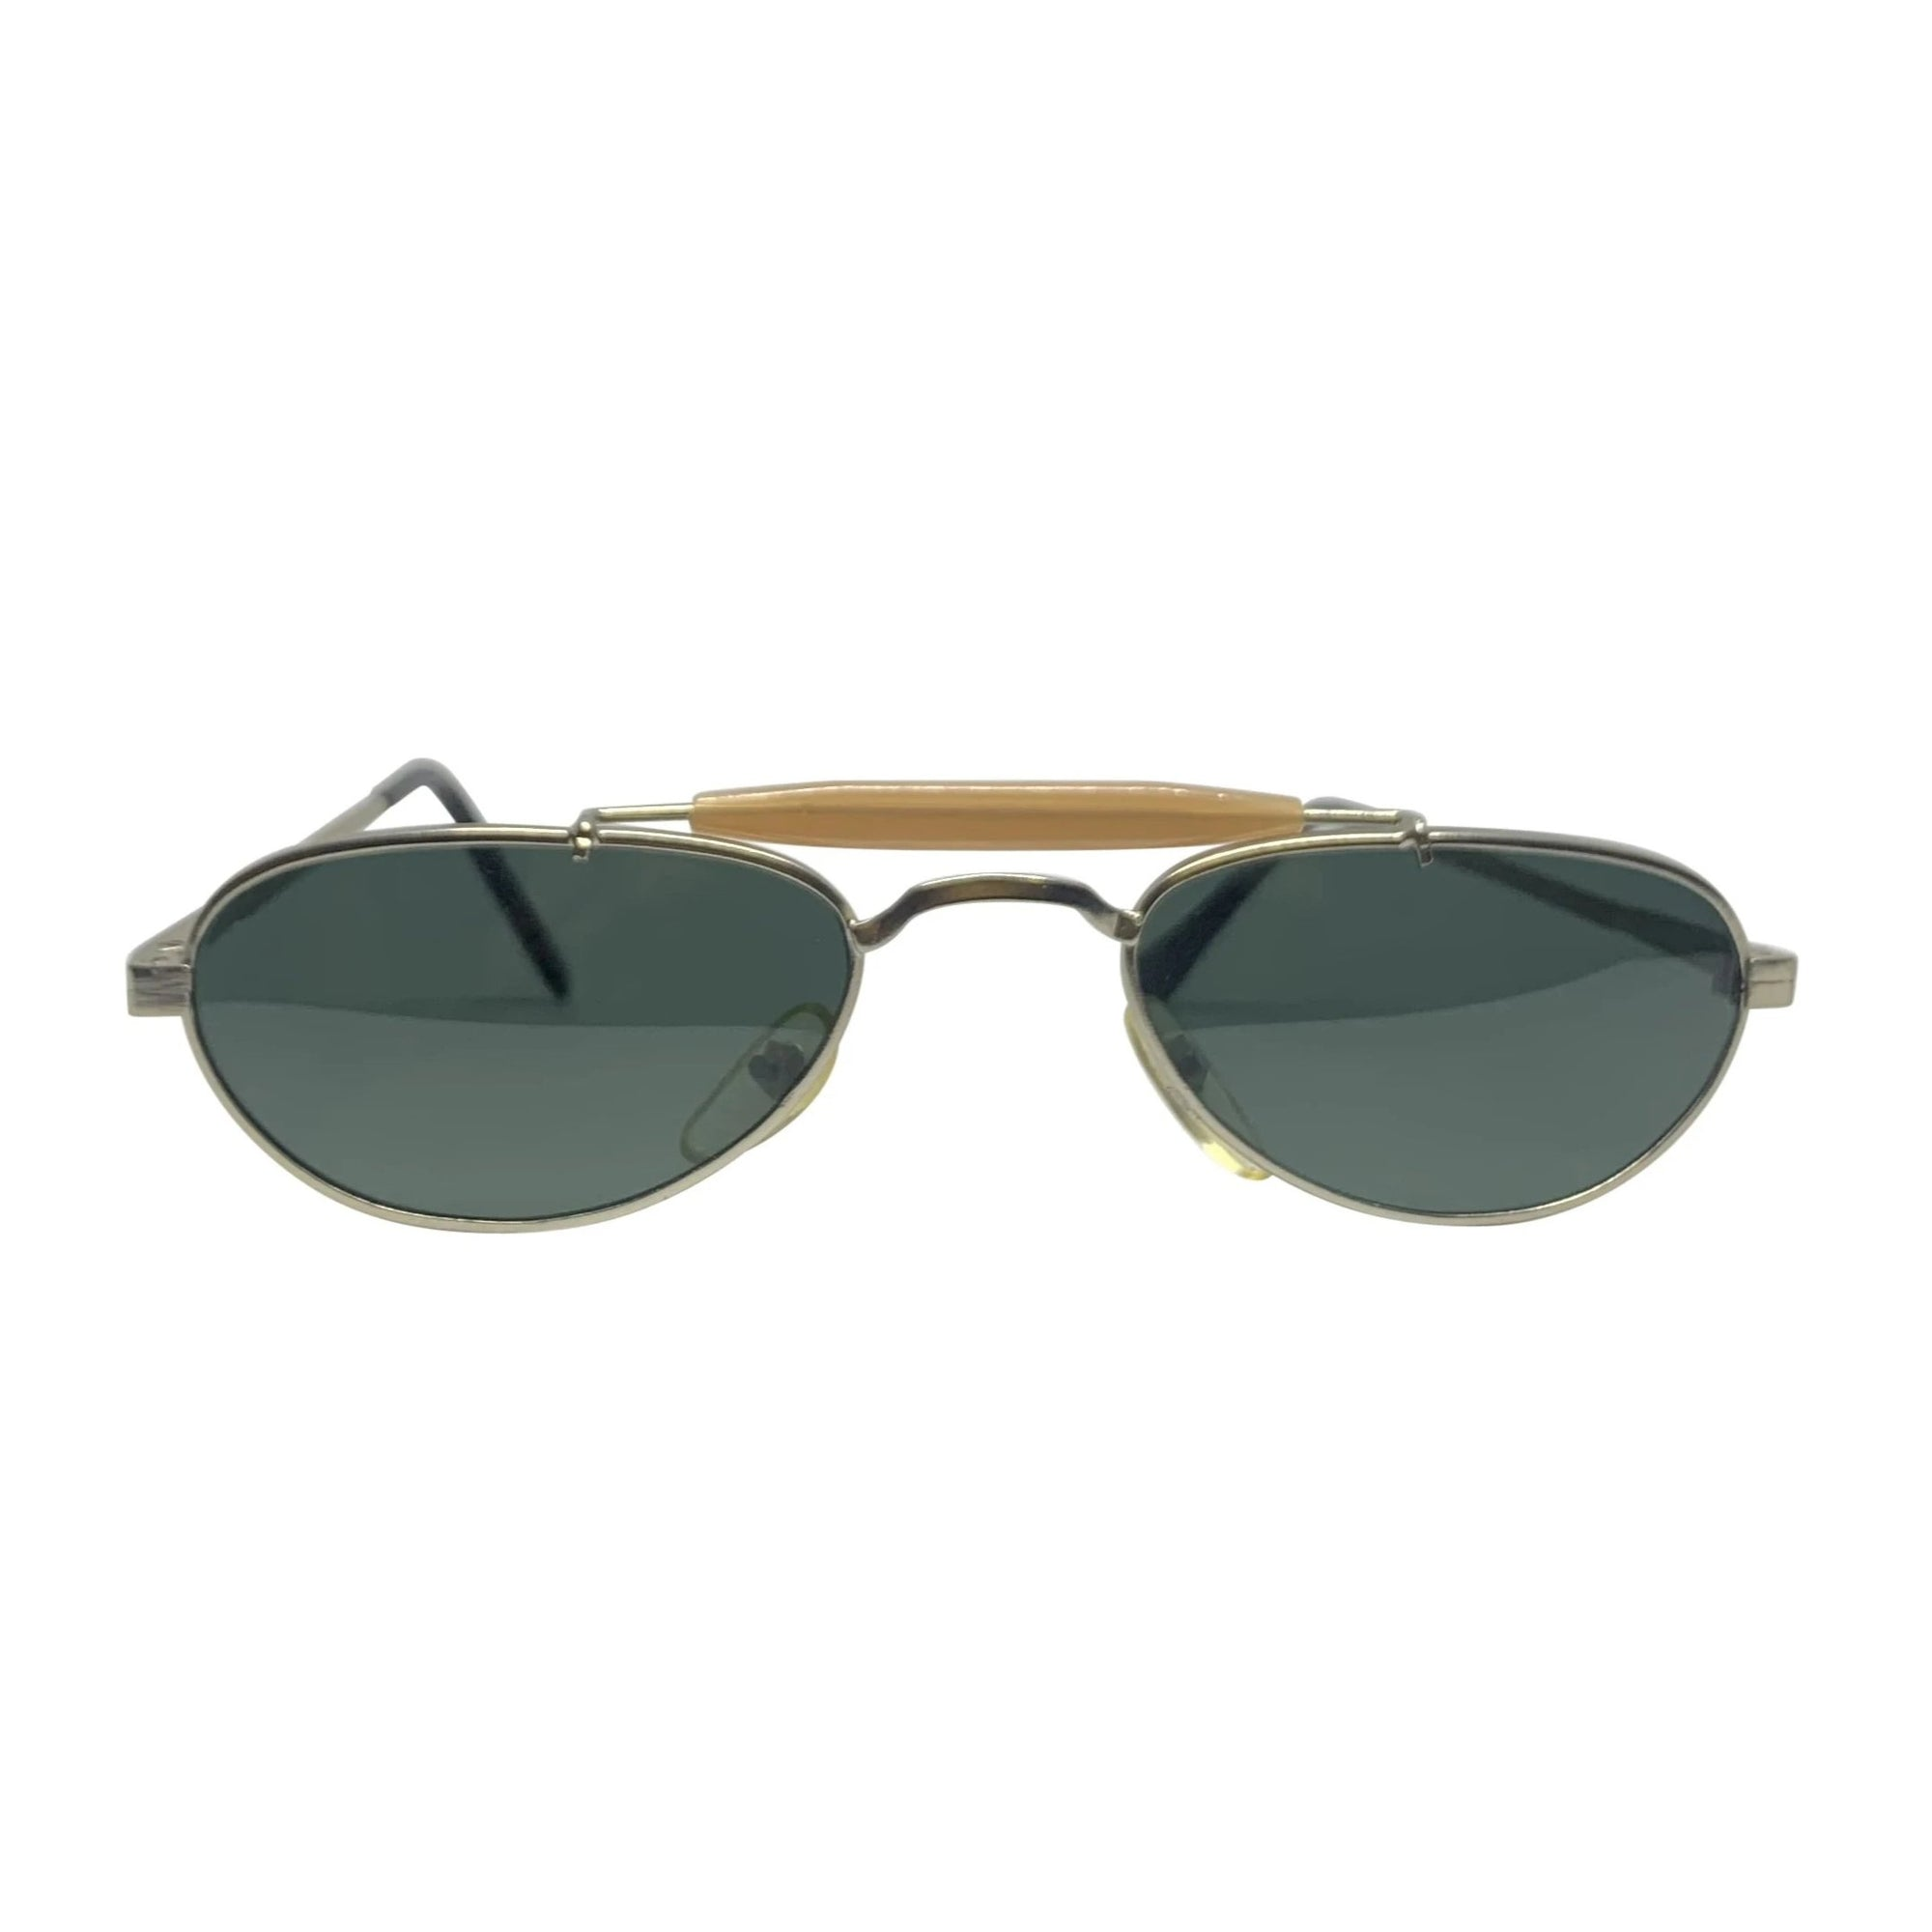 BARACK-O Silver Tan Small Aviator Sunnies